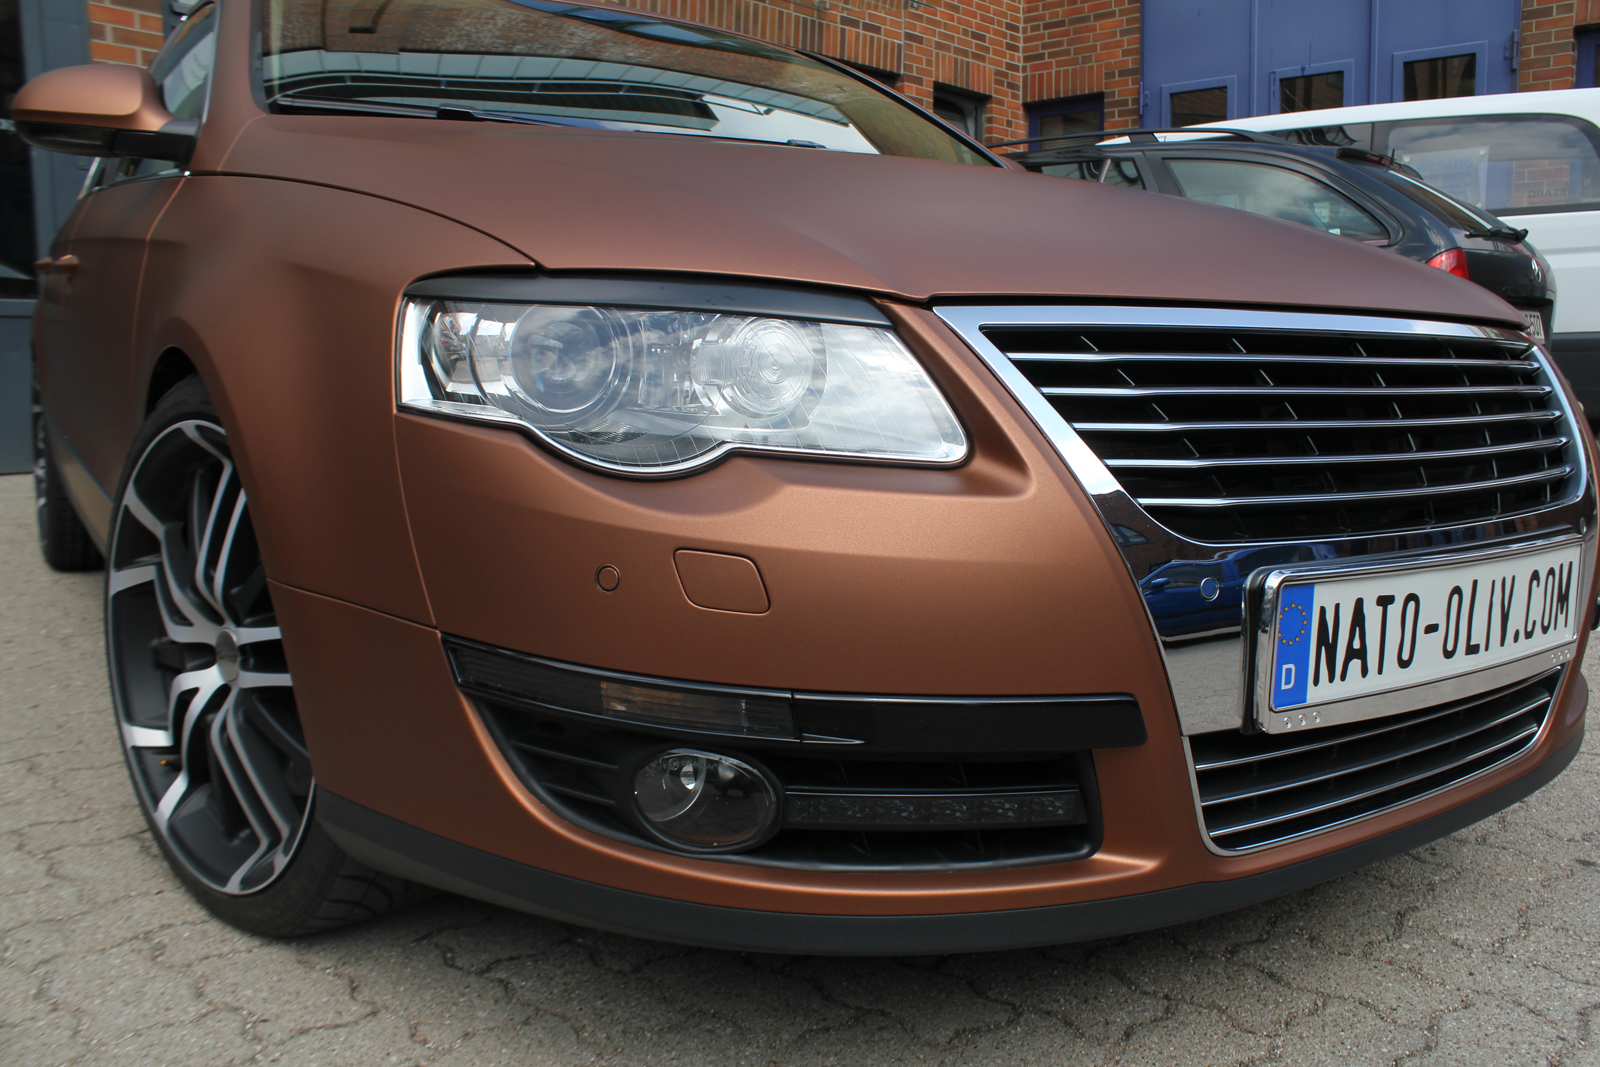 VW_Passat_Folierung_Bronze_matt_metallic_16